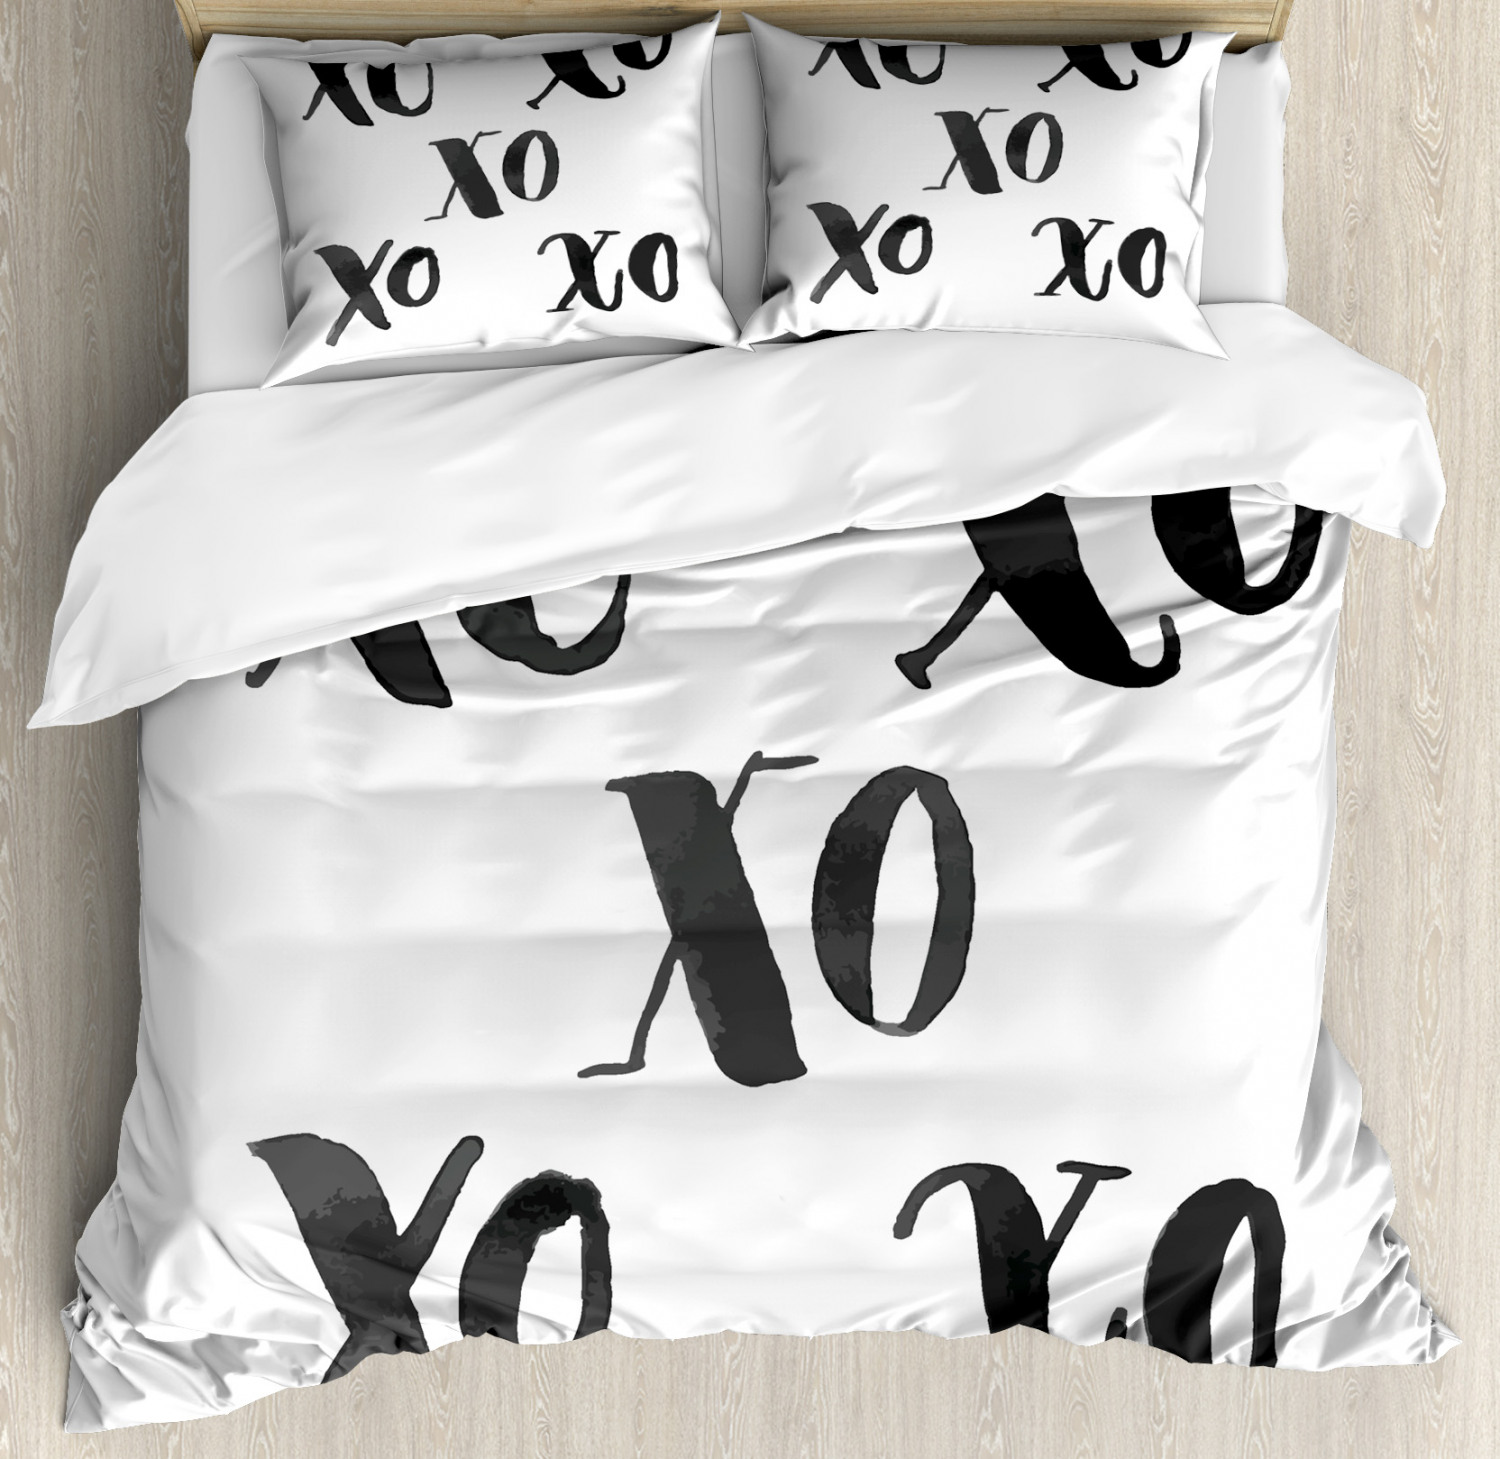 Xo Duvet Cover Set with Pillow Shams Classic Old Fashion Letters Print